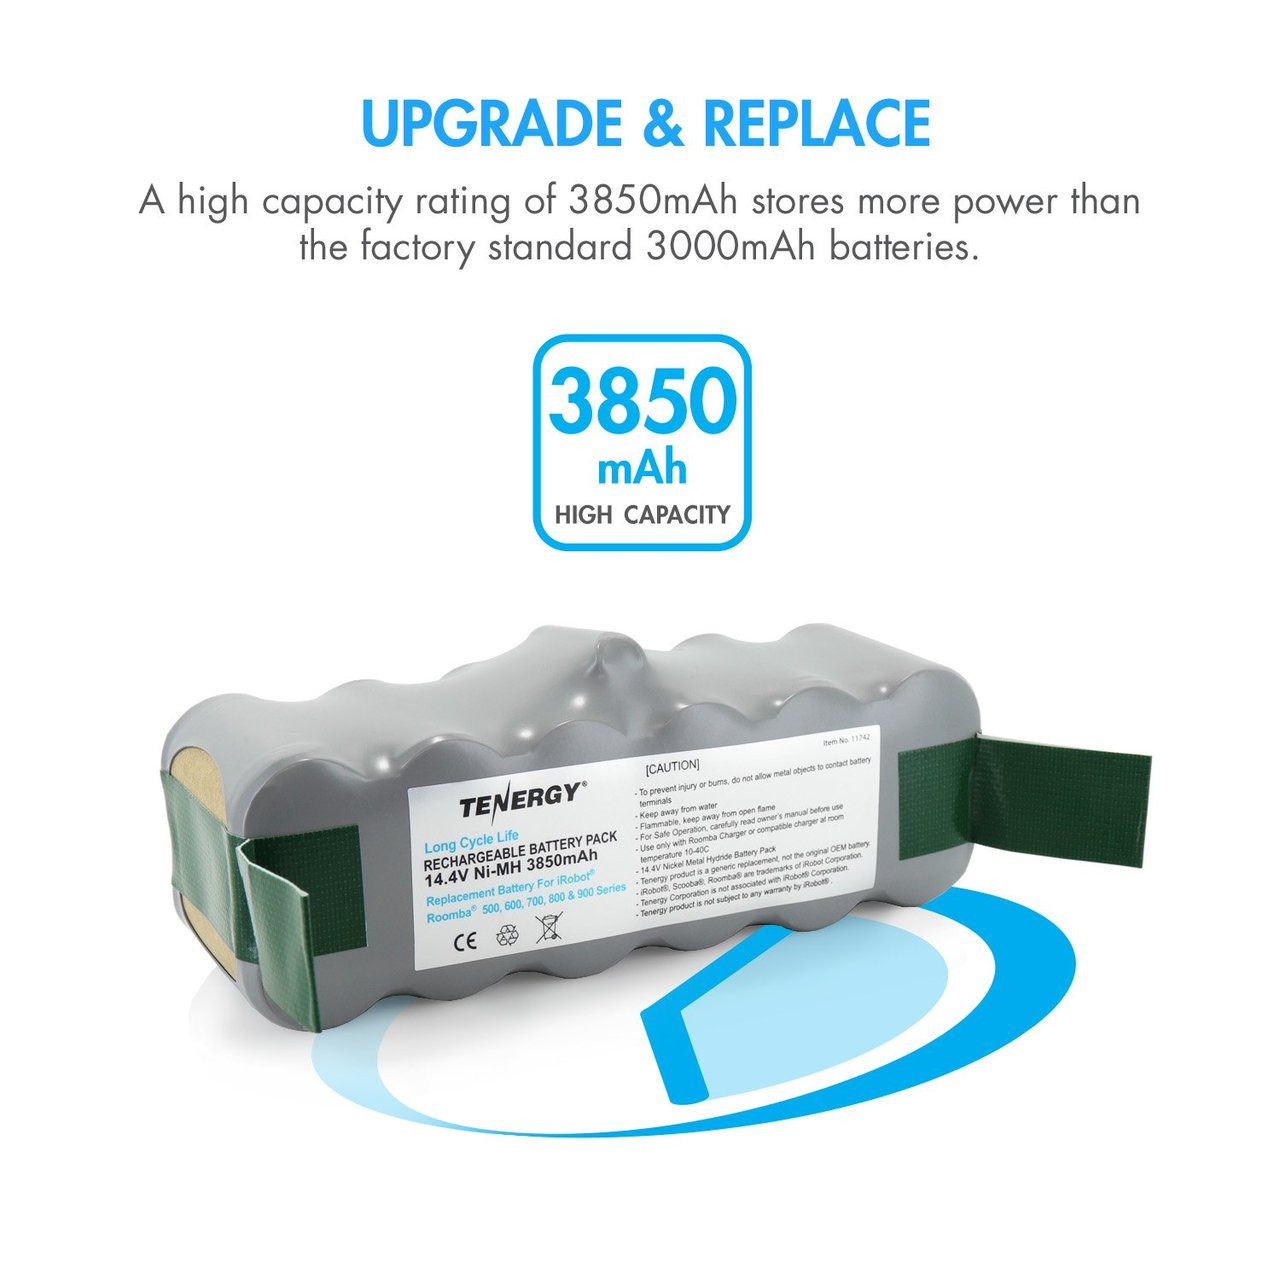 Tenergy New Long Cycle Life 3850mAh NiMH Roomba Replacement Battery For 500, 600, 700, 800, & 900 Series